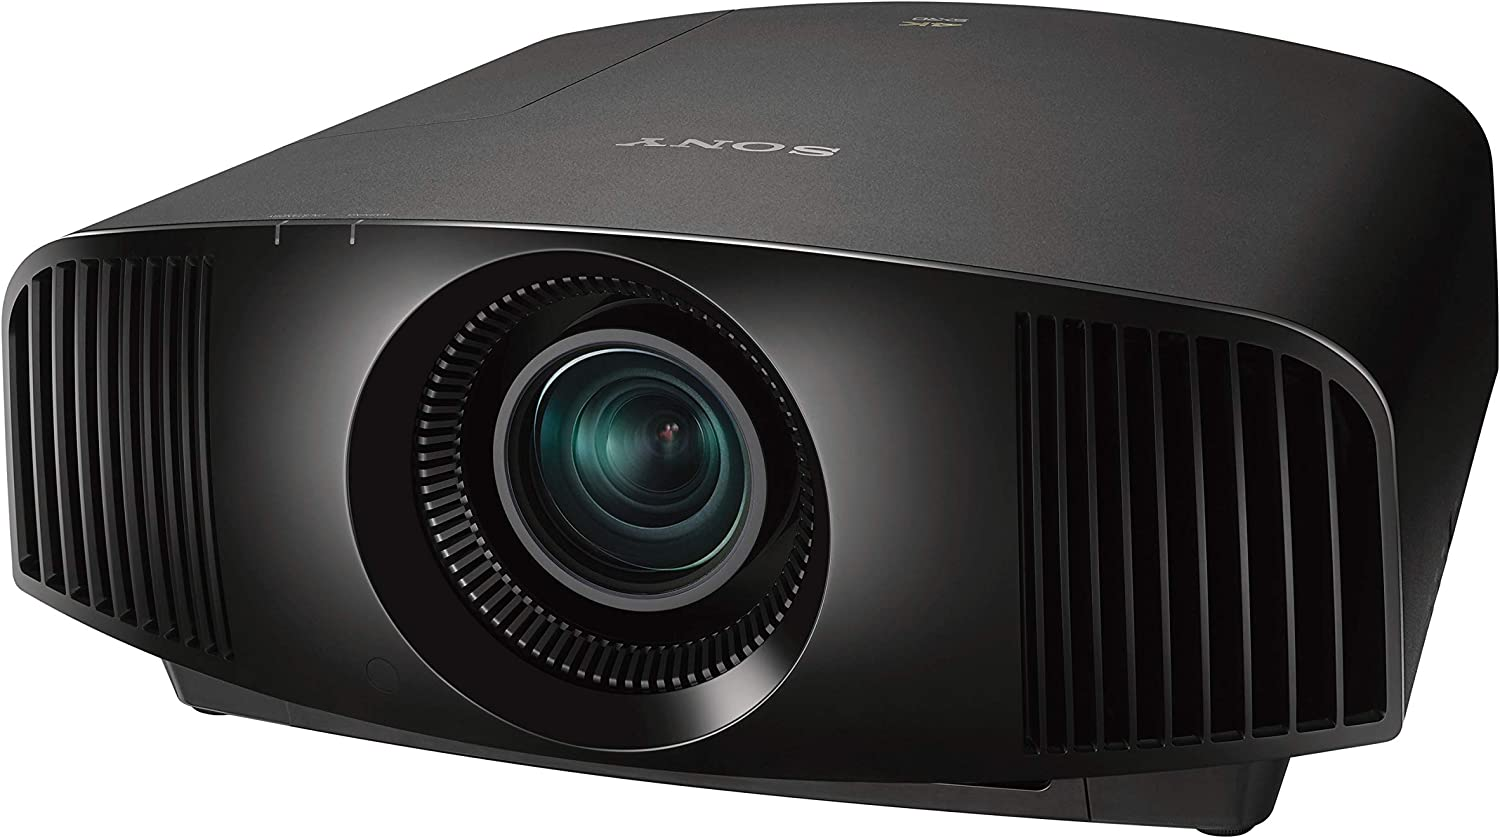 Best 4k Home Theater Projector USA 2021